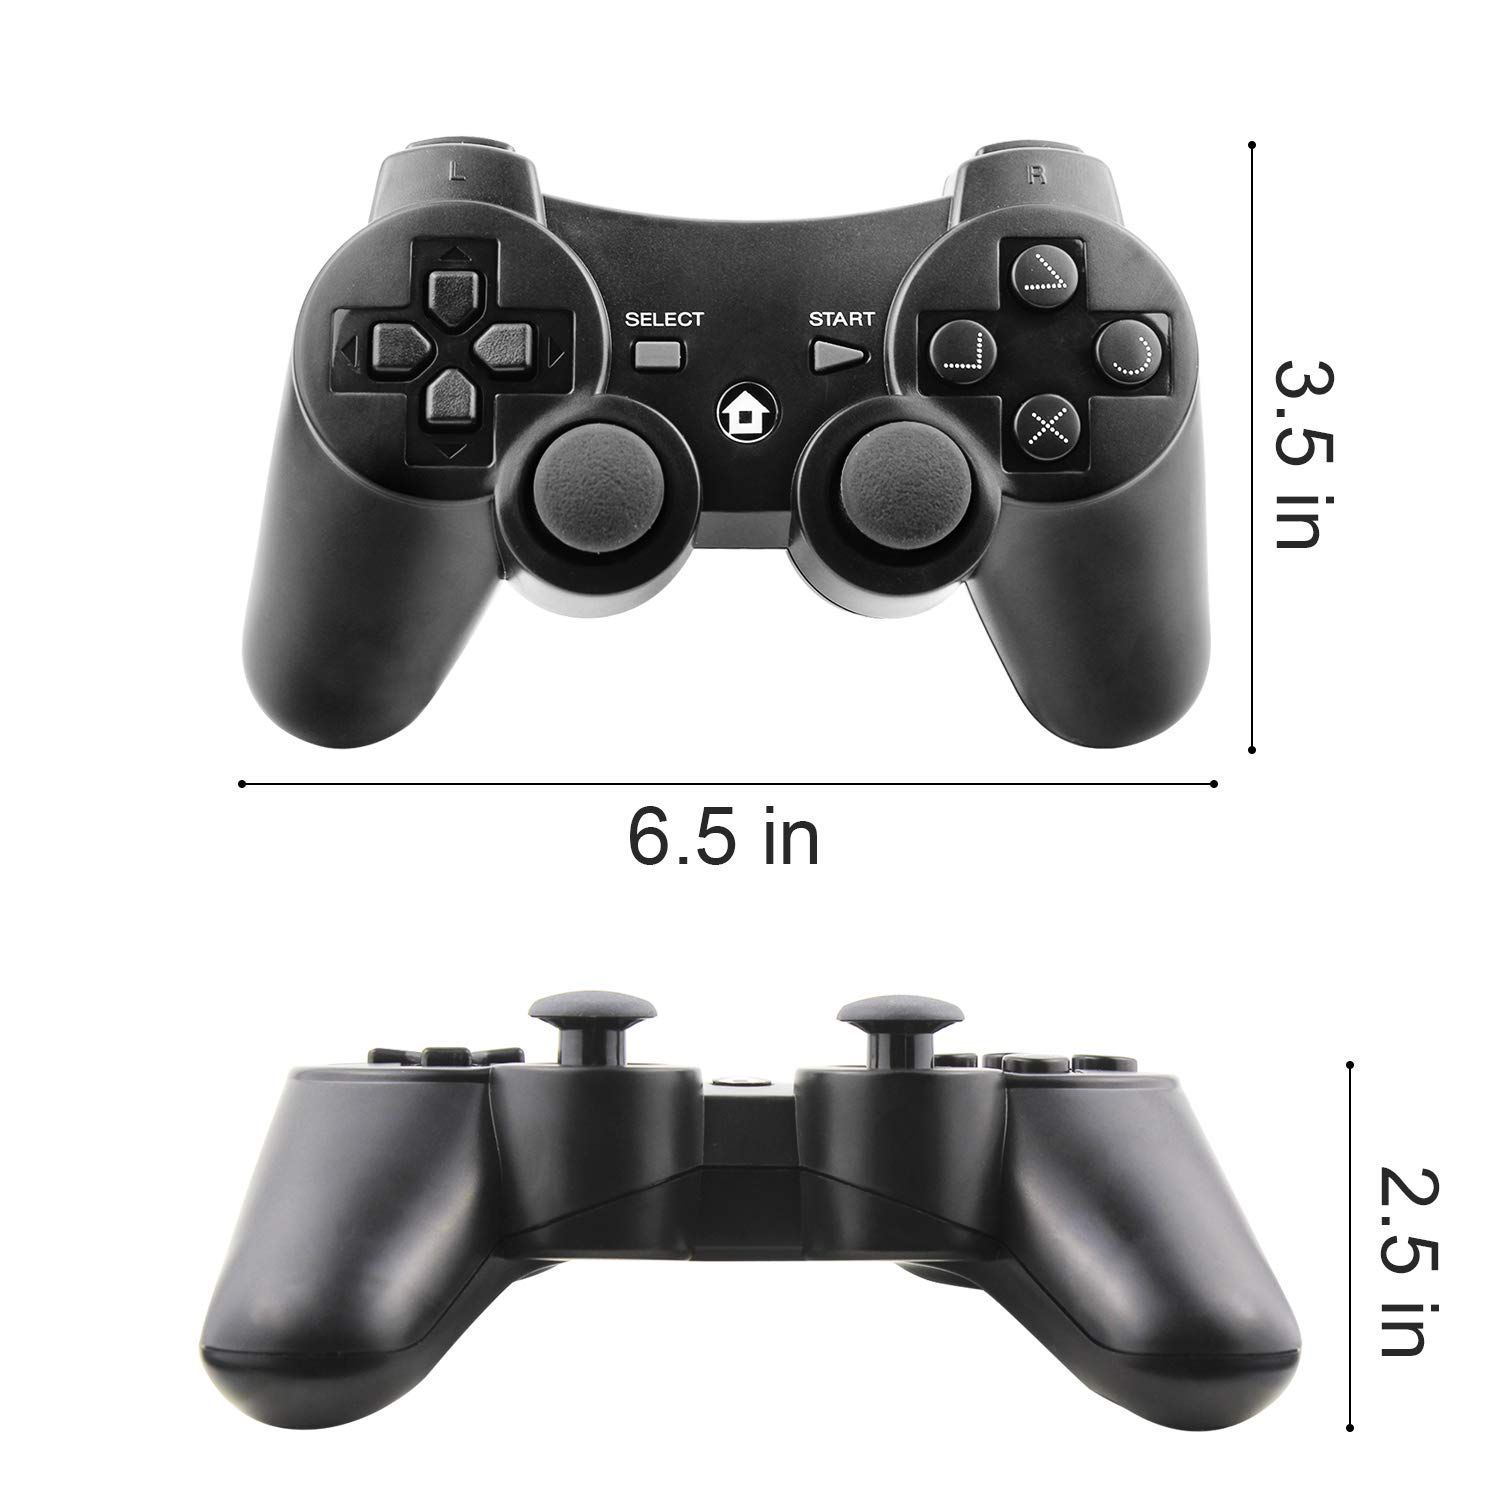 Jamswall Wireless Ps3 Controller Wireless Gamepad For Playstation 3 Bluetooth Gaming Sixaxis Joystick With Us Wireless Controller Ps3 Controller Usb Chargers